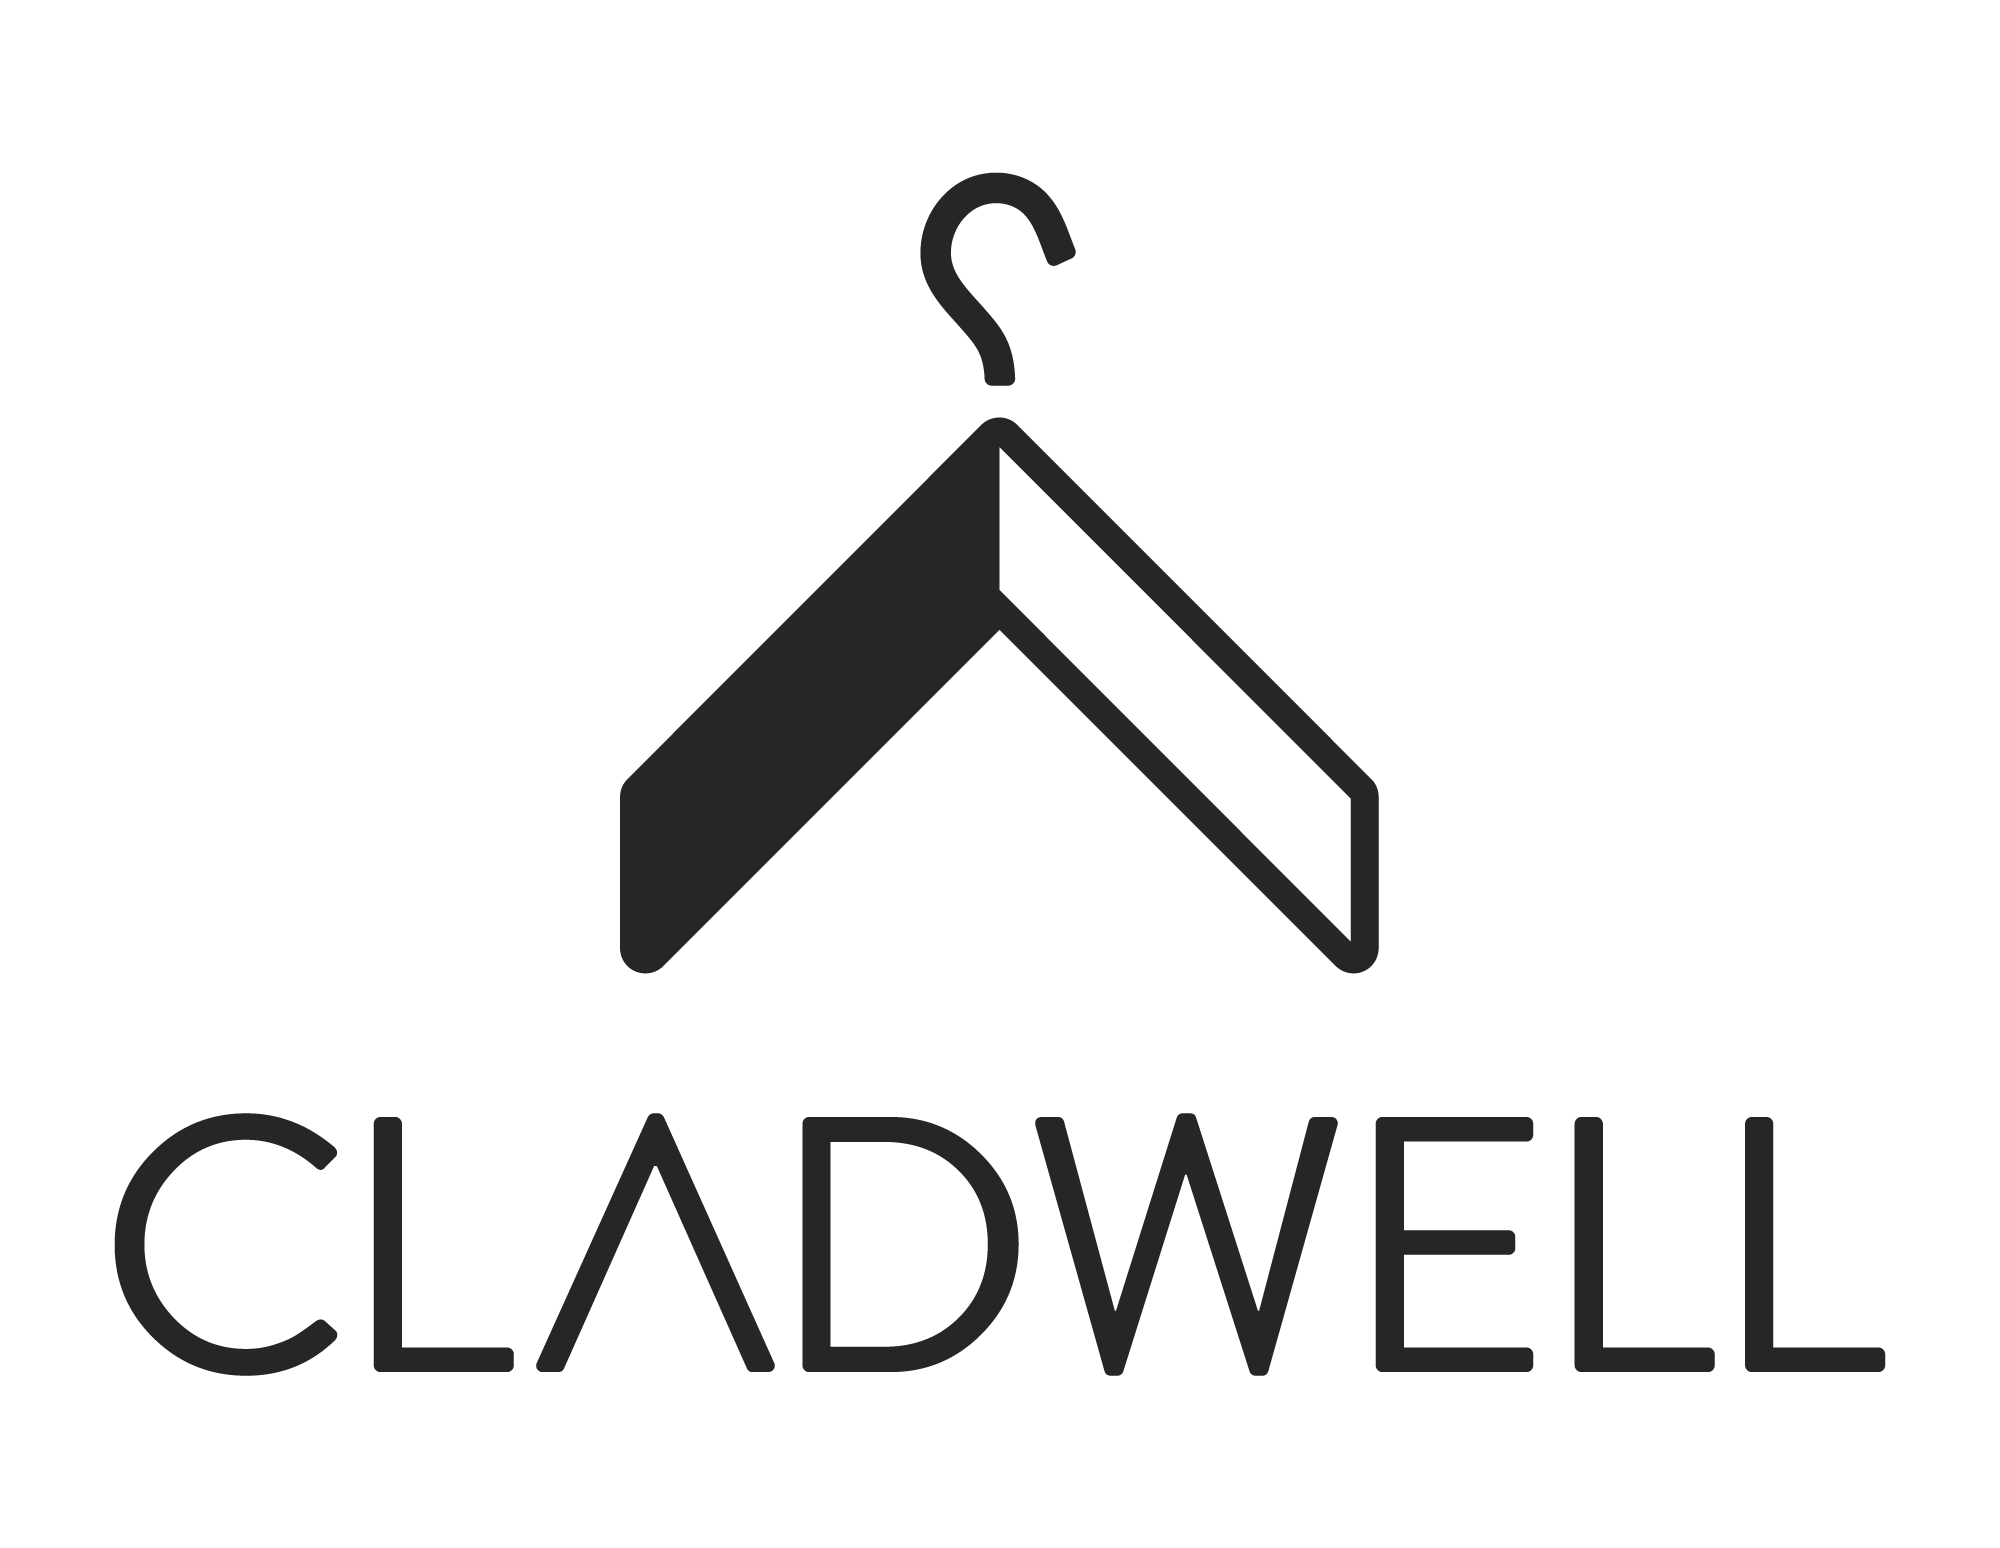 Cladwell-Logo-Stacked-Black.png